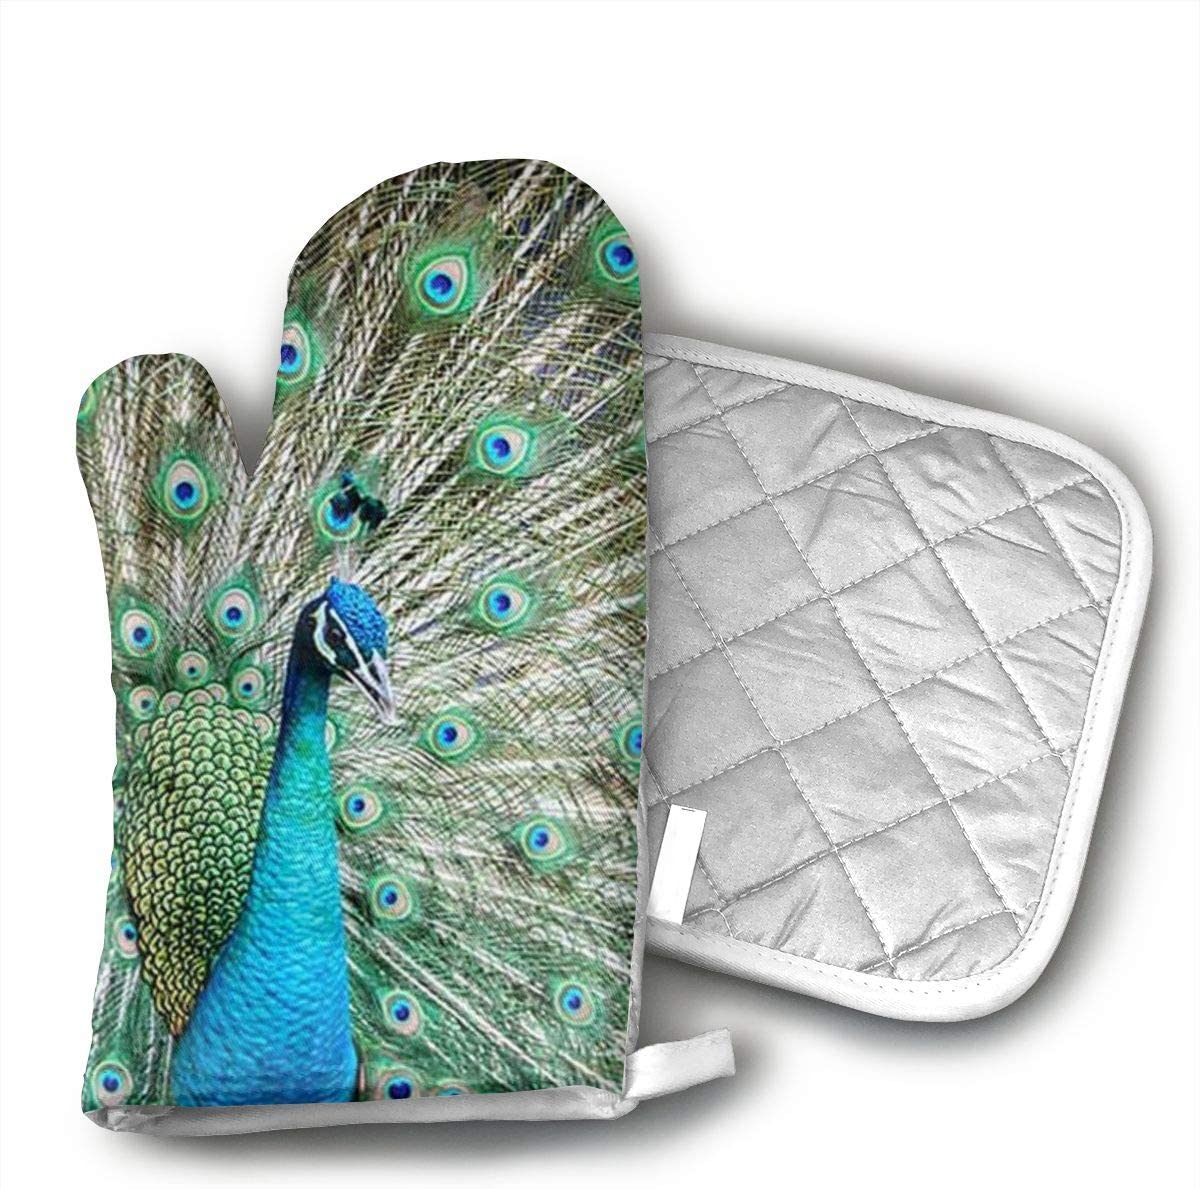 not Oven Mitts and Potholders Peacock Showing Its Feathers Non-Slip Grip Heat Resistant Oven Gloves BBQ Cooking Baking Grilling